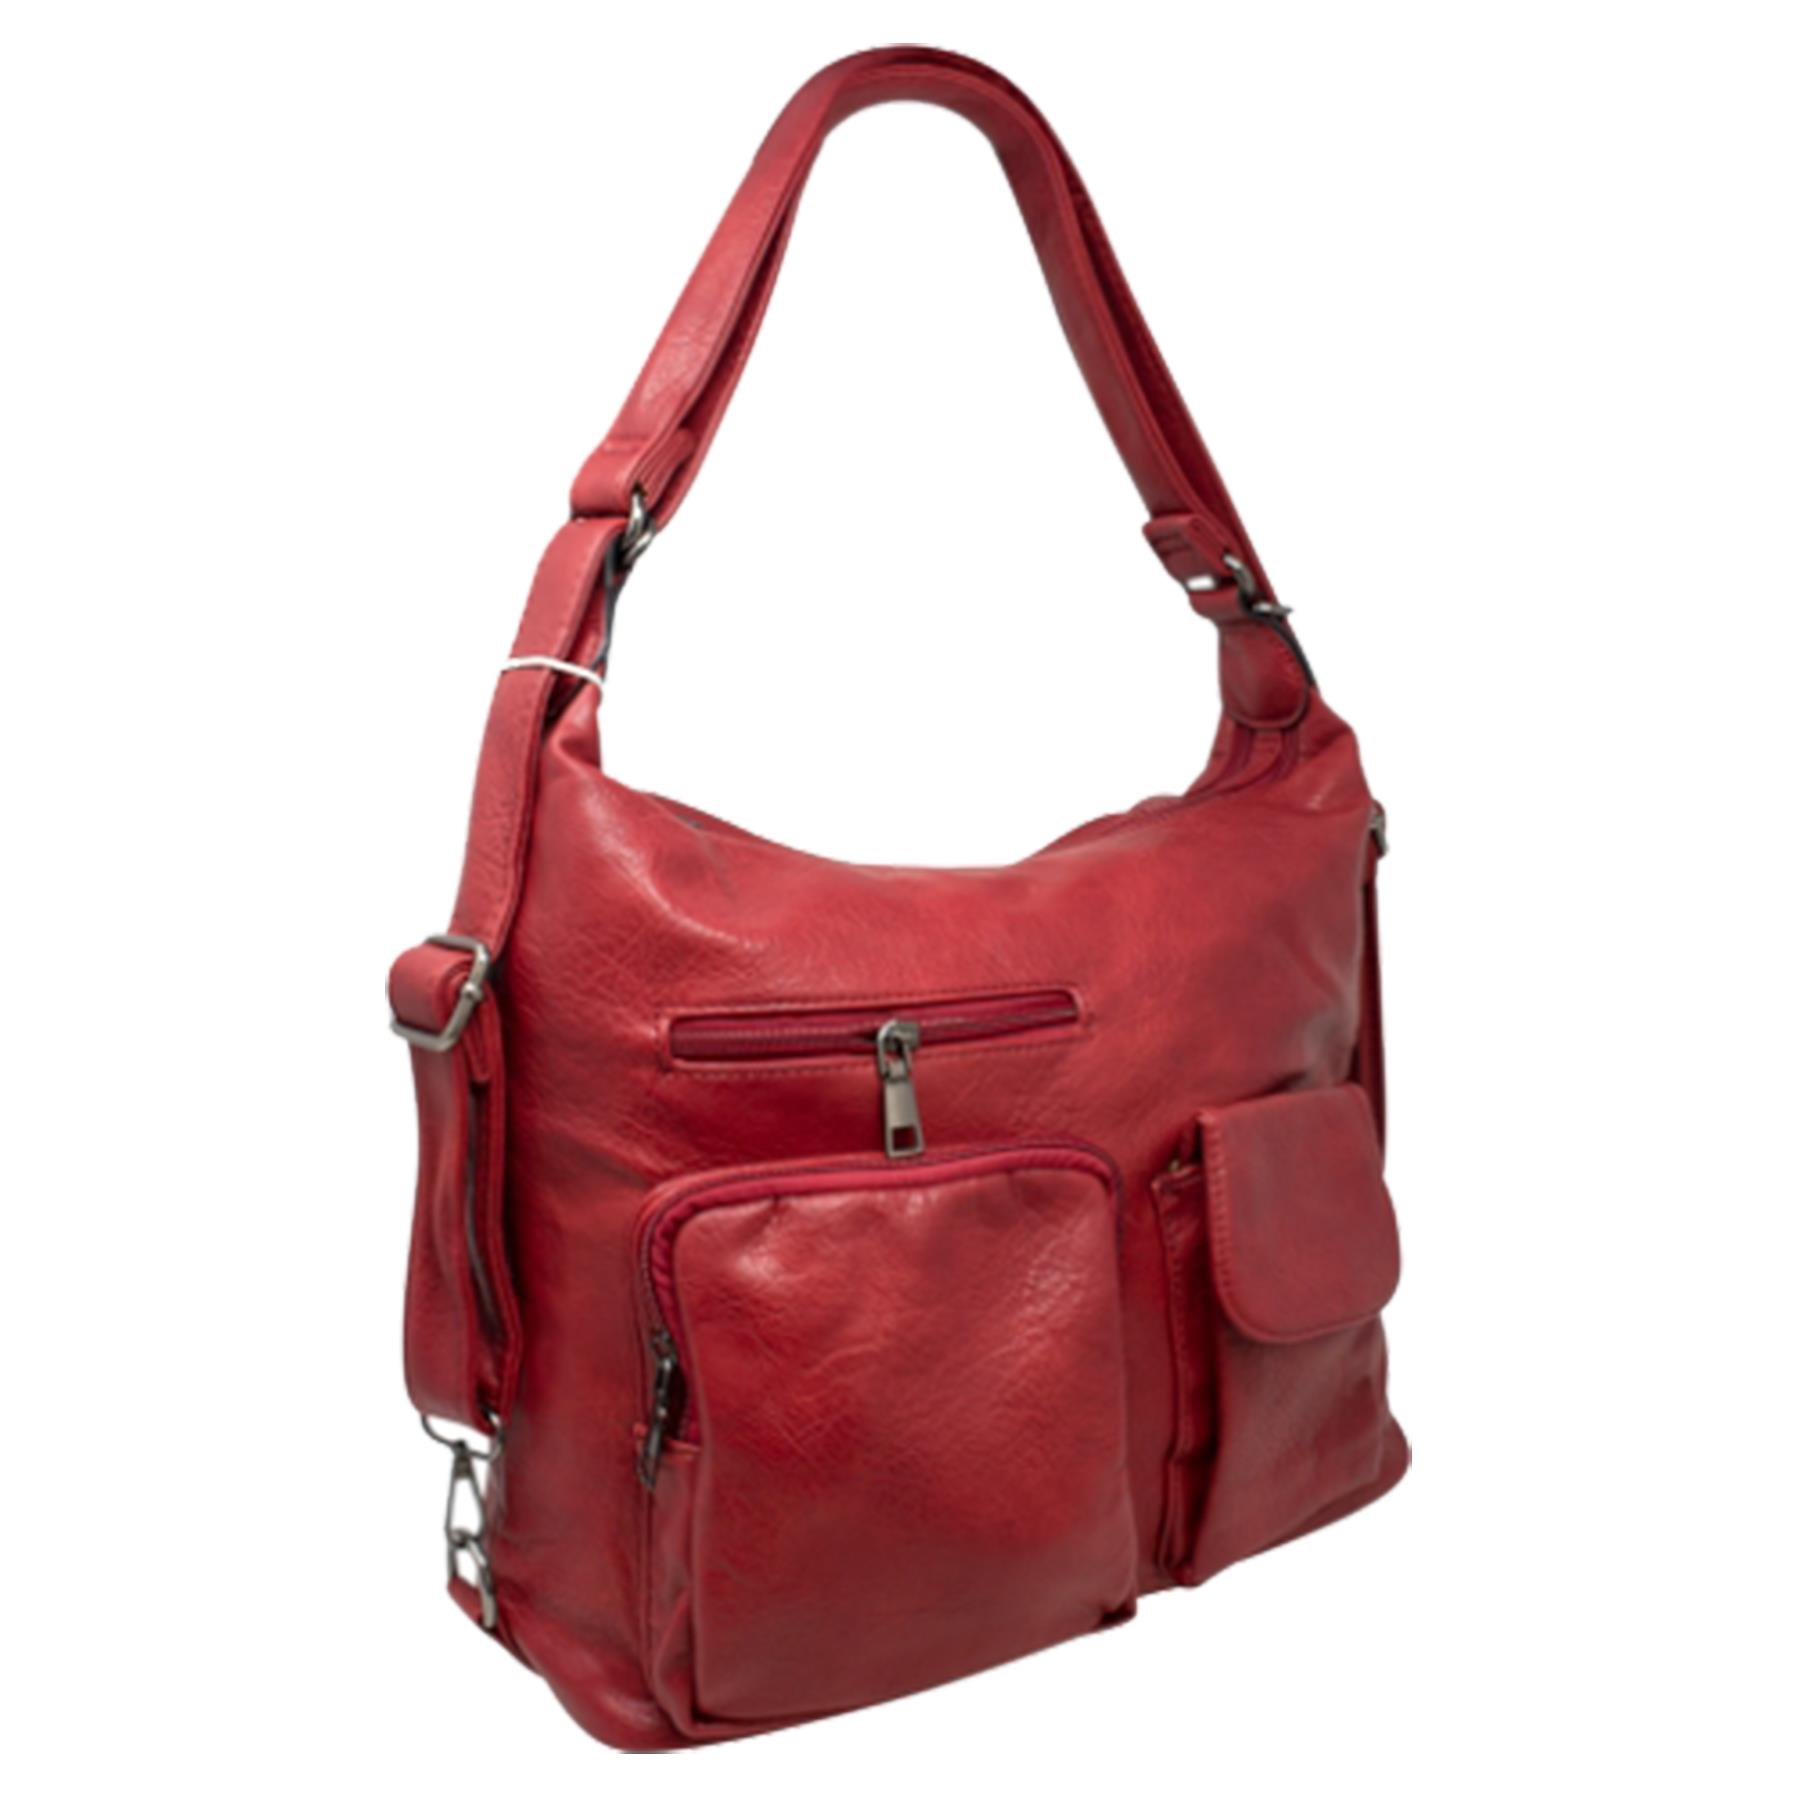 New-Women-s-Men-s-Faux-Leather-Multi-Purpose-Crossbody-Messenger-Bag thumbnail 23